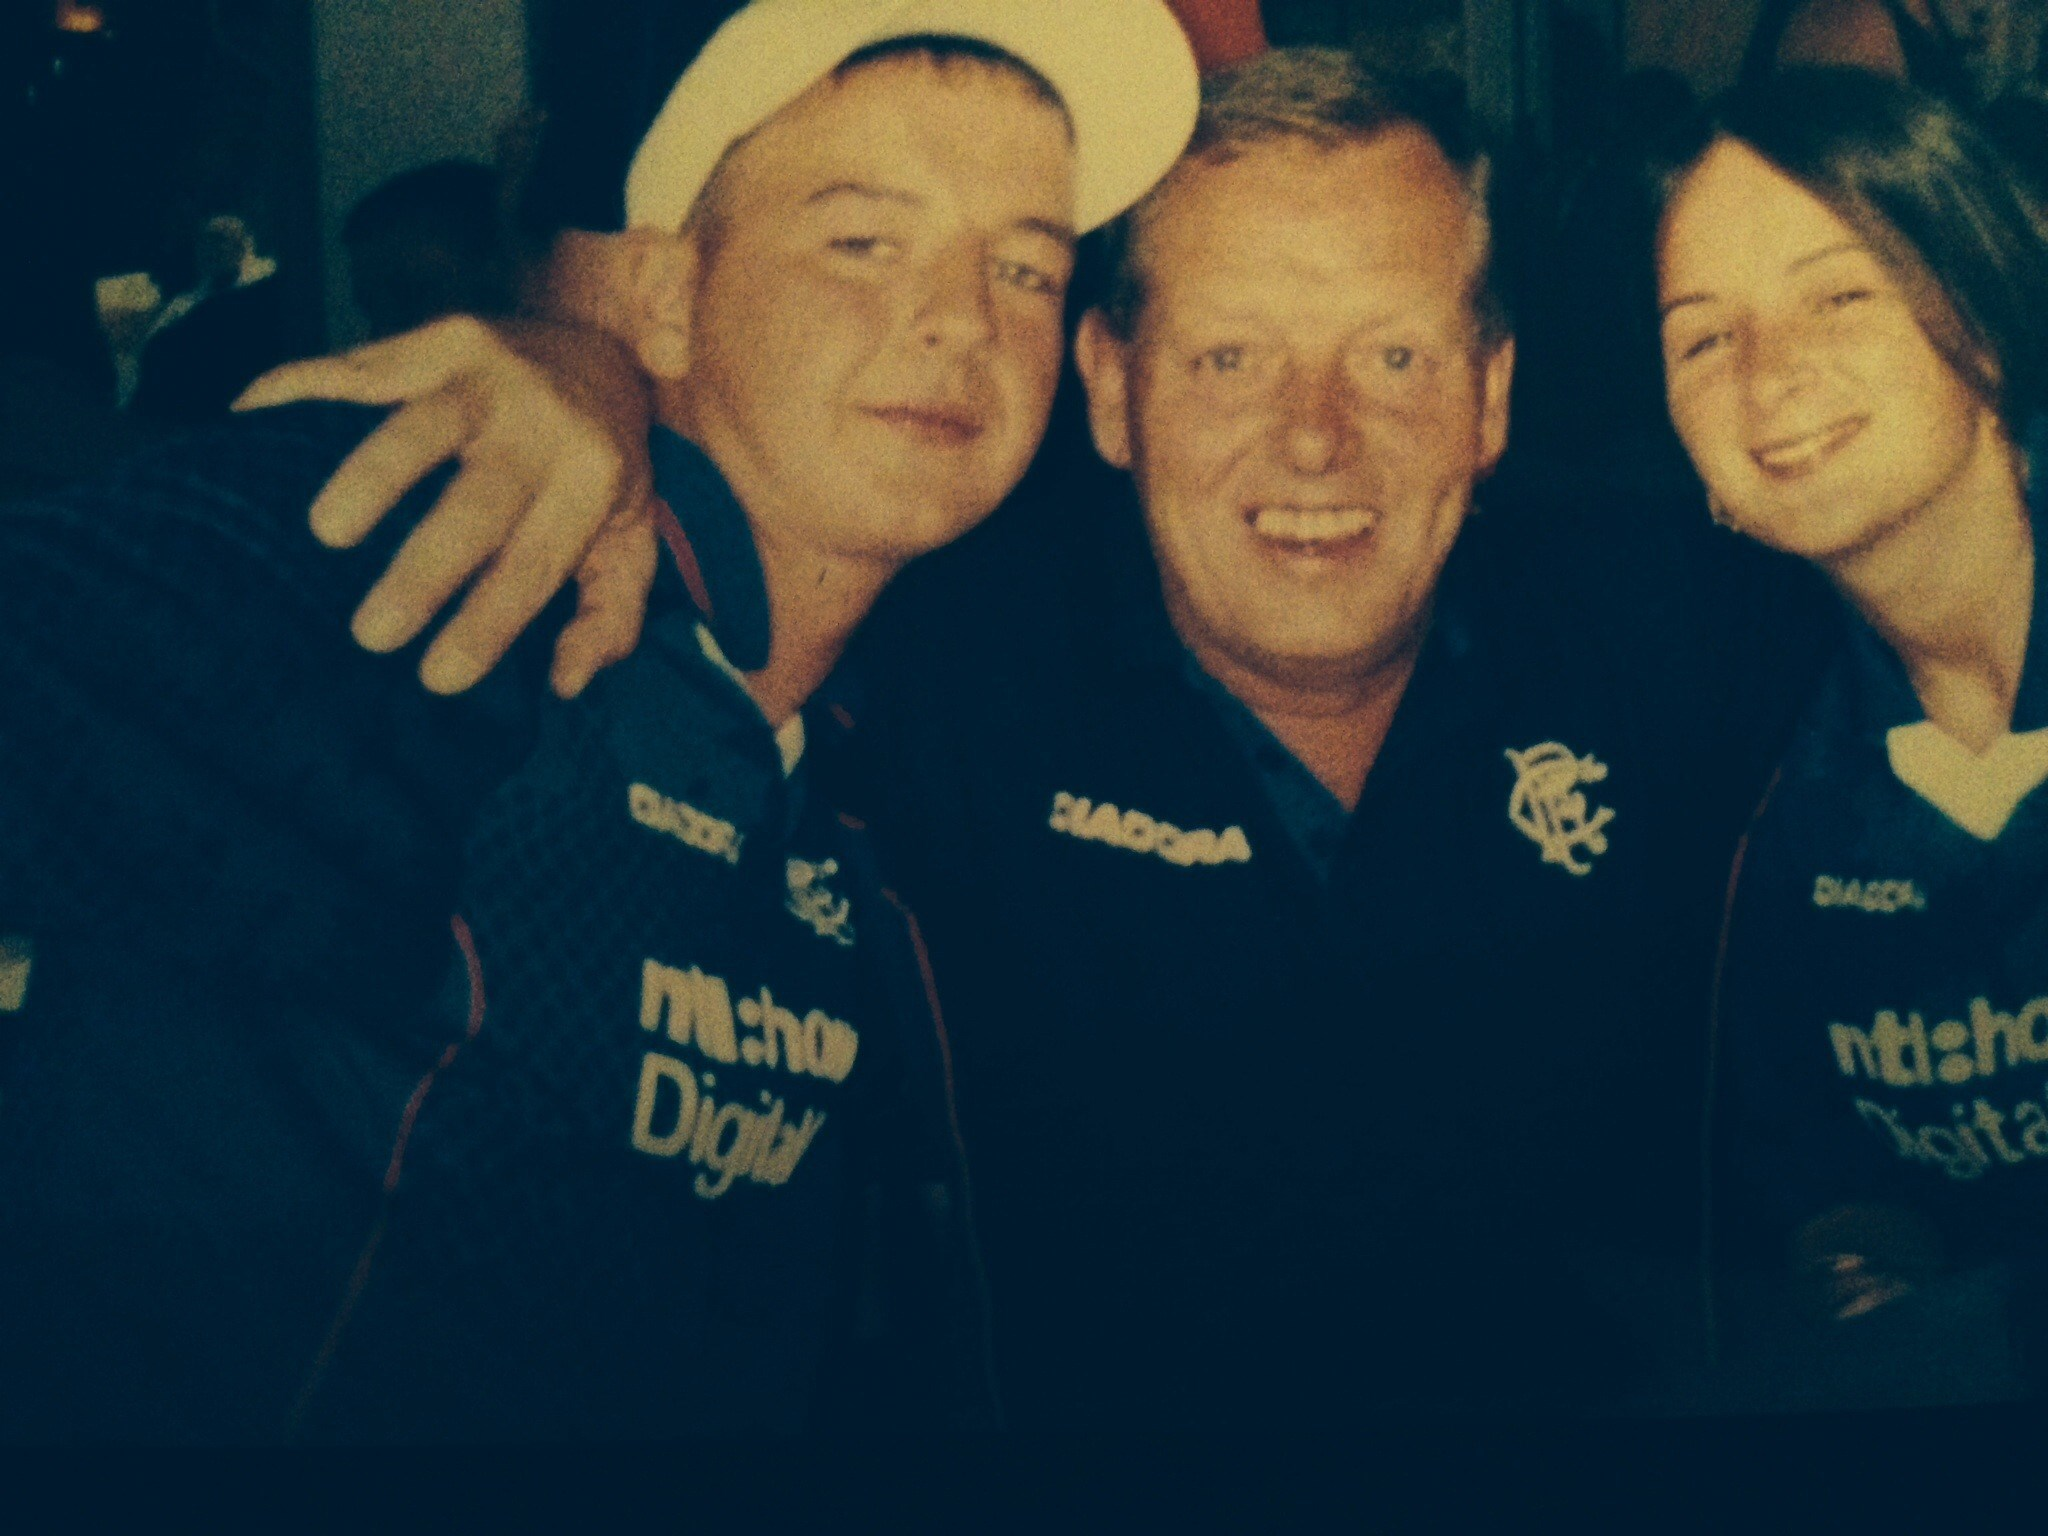 Benidorm holiday.  We parted liked we gas too, bowling about with rangers tops on xx